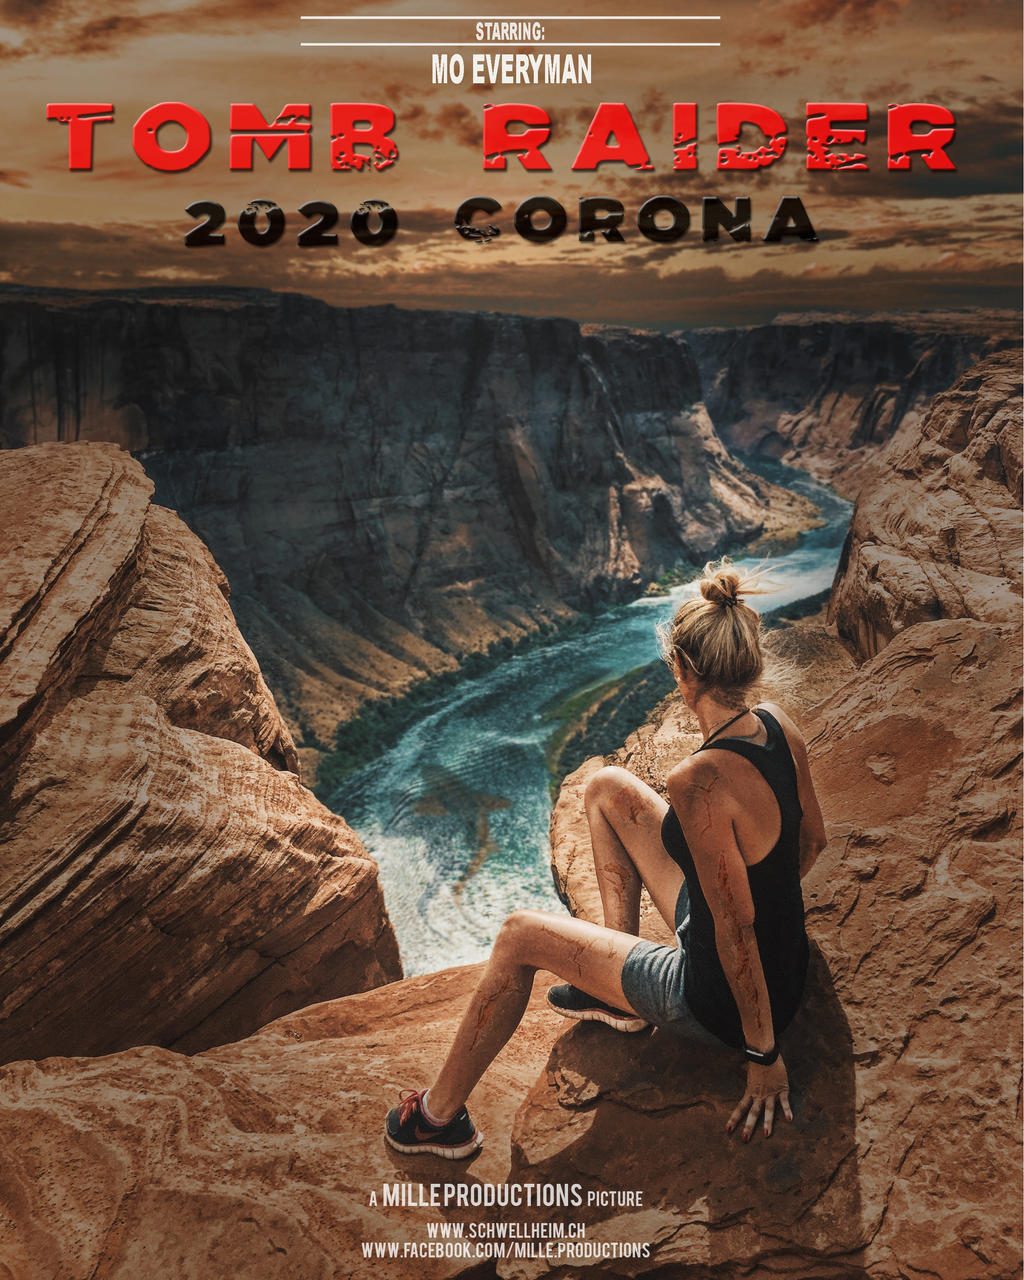 Tomb Raider 2020 Corona By Milleproductions On Deviantart